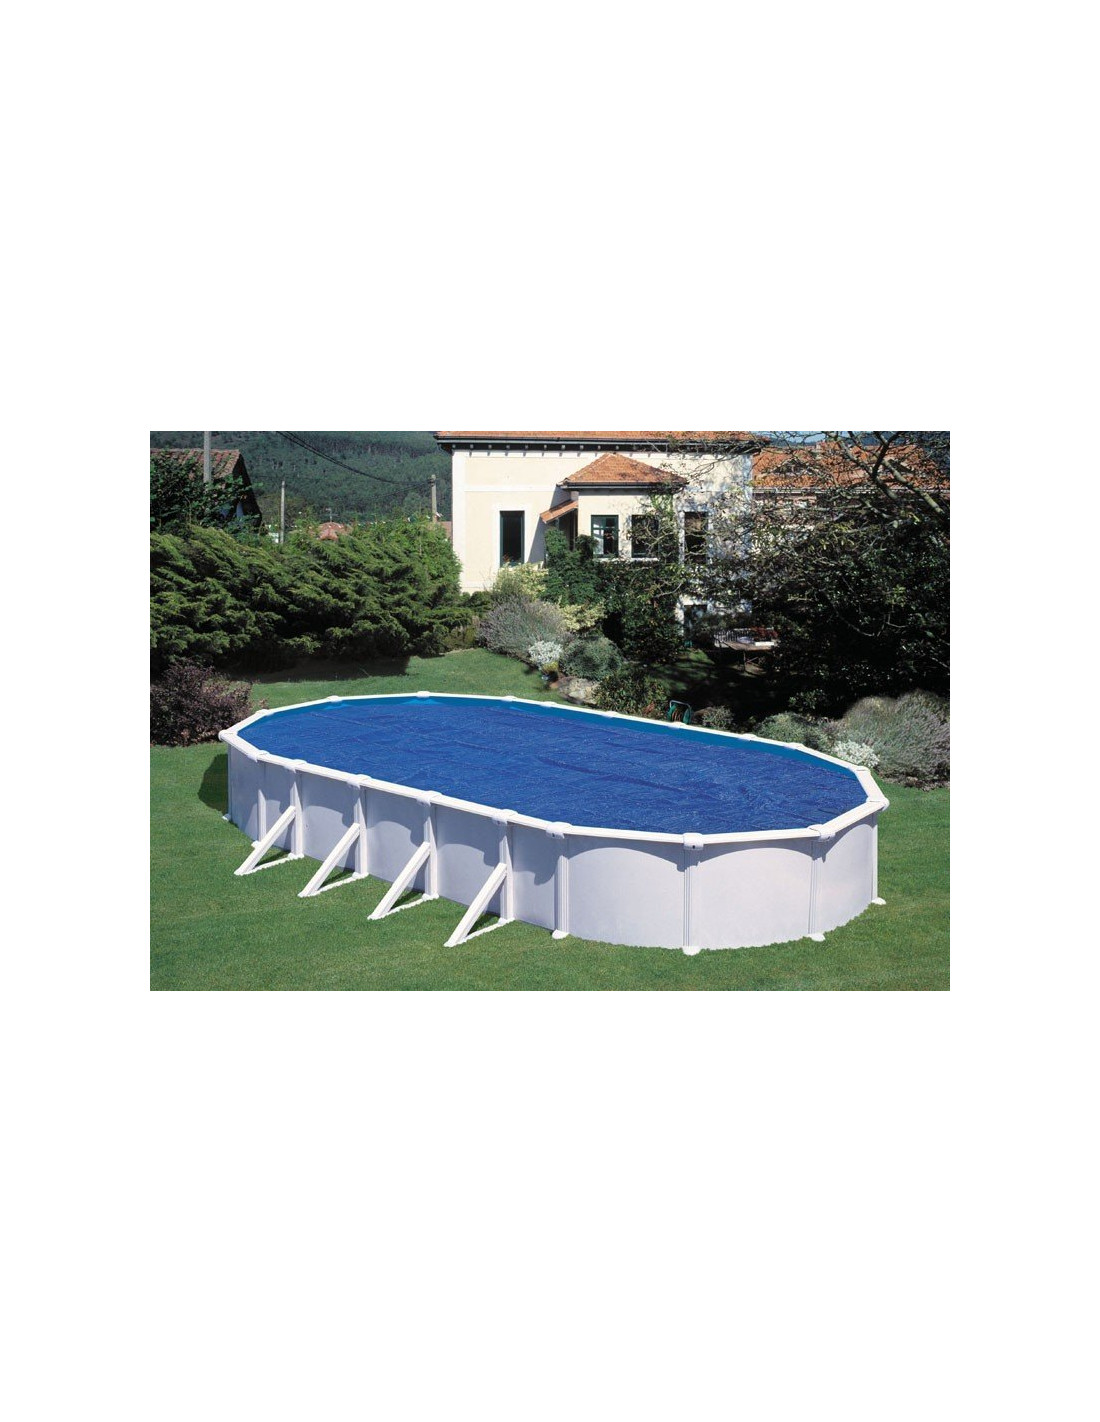 Bache piscine hors sol ovale gre pool bache bulles solaire for Piscine gonflable ovale